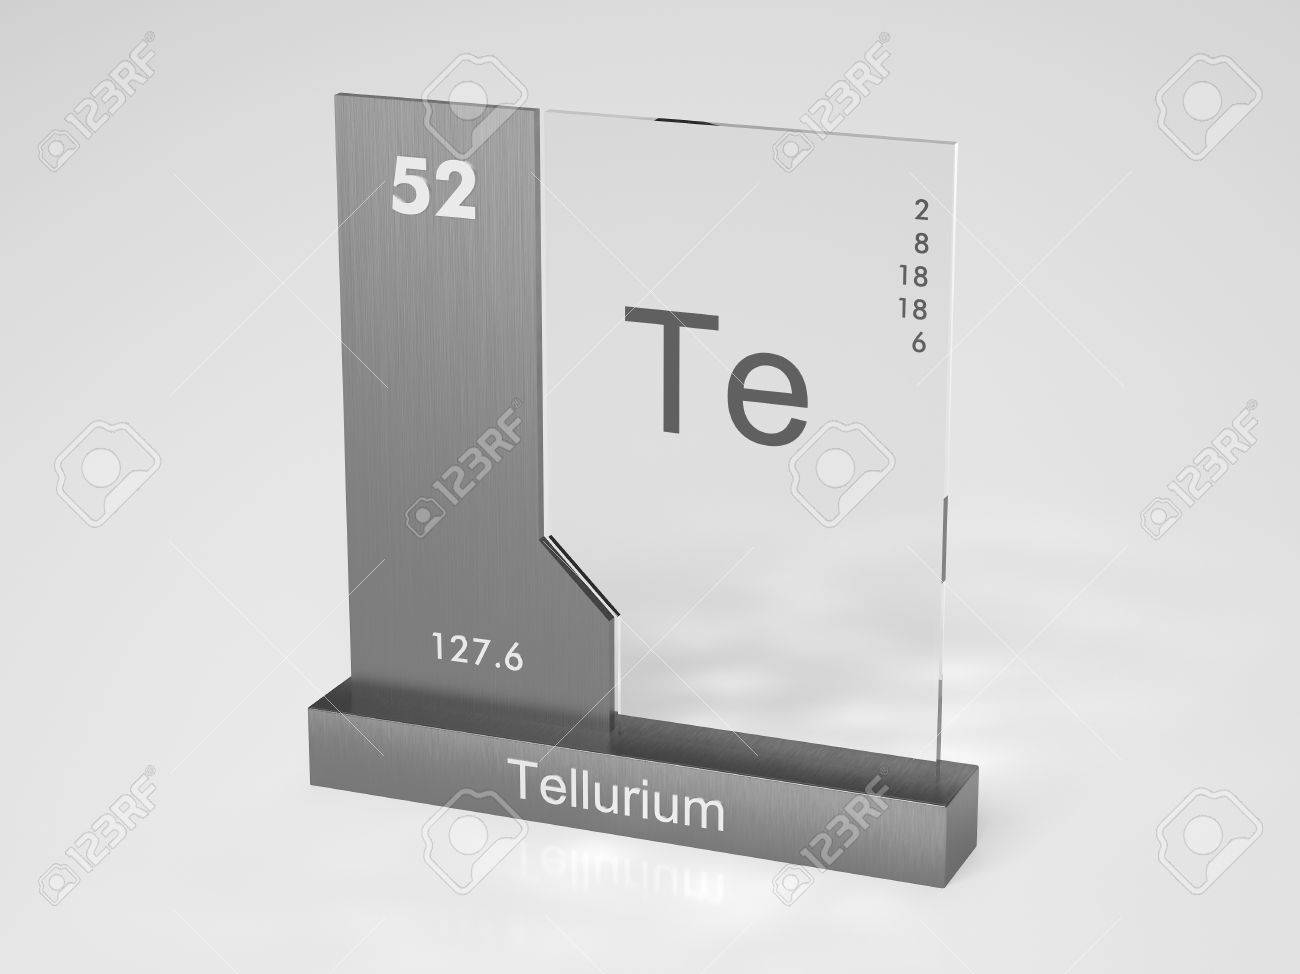 Tellurium symbol te chemical element of the periodic table stock stock photo tellurium symbol te chemical element of the periodic table urtaz Image collections